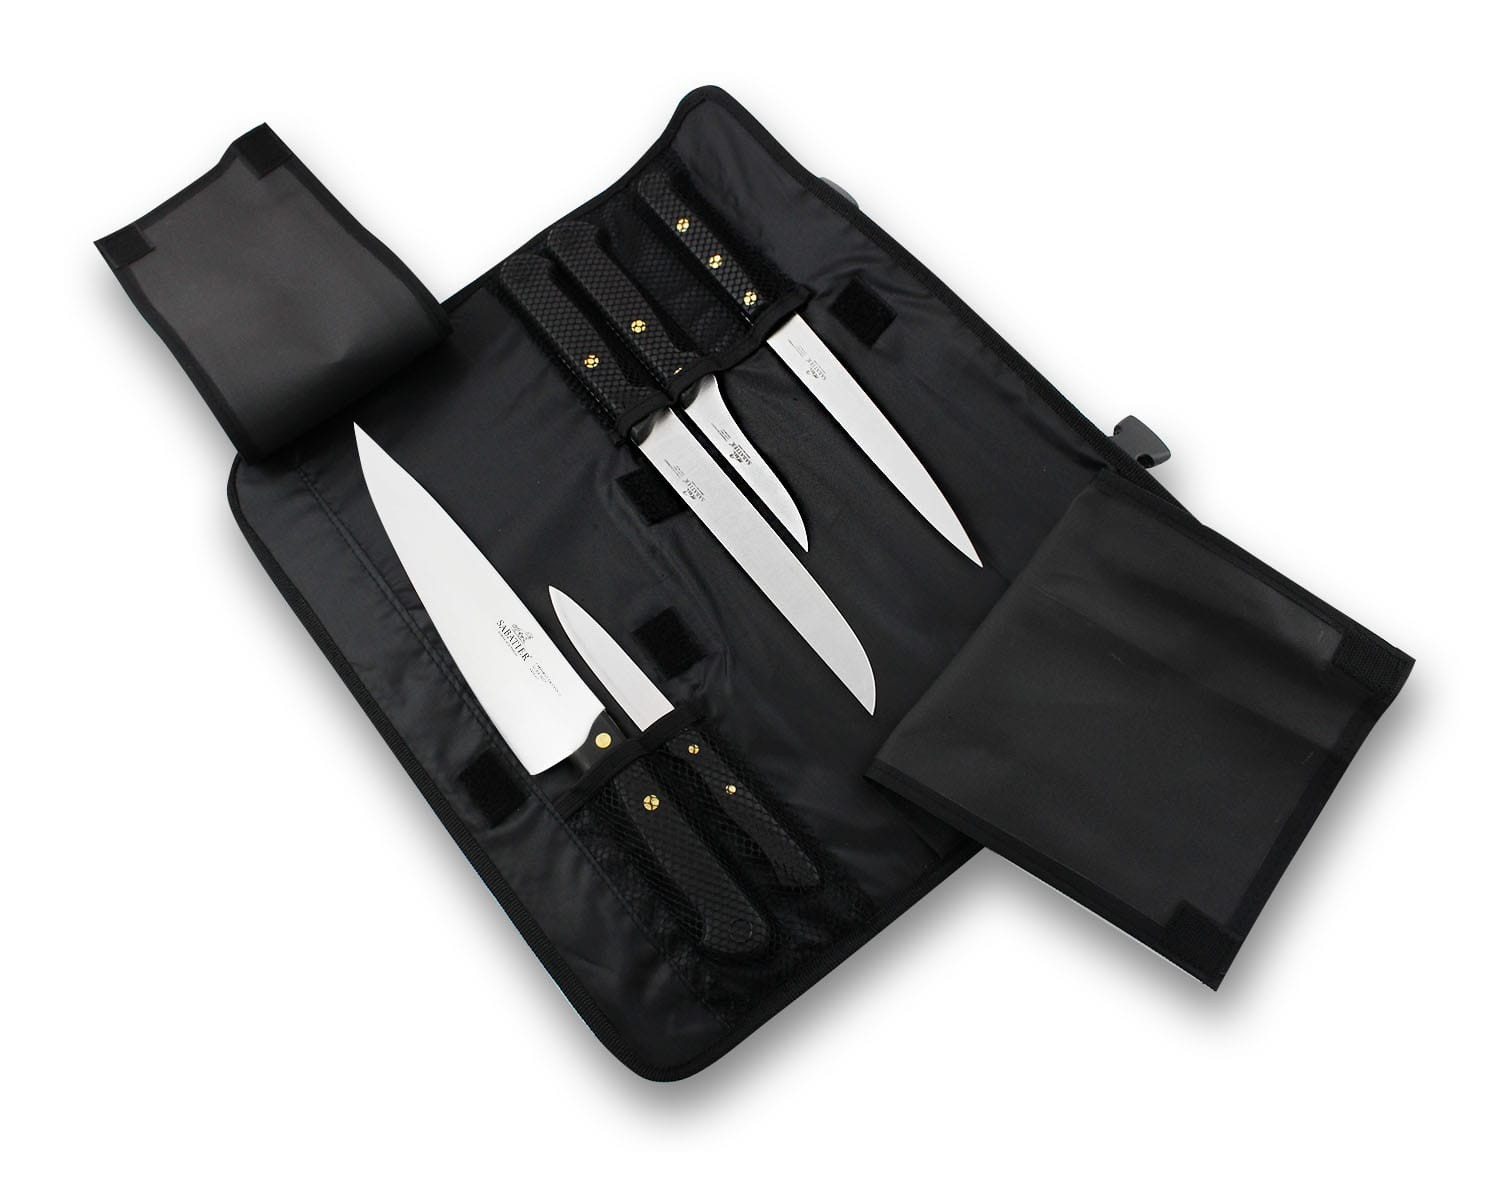 sabatier kitchen knives sabatier knife bag with 5 kitchen knives 100 french 7552